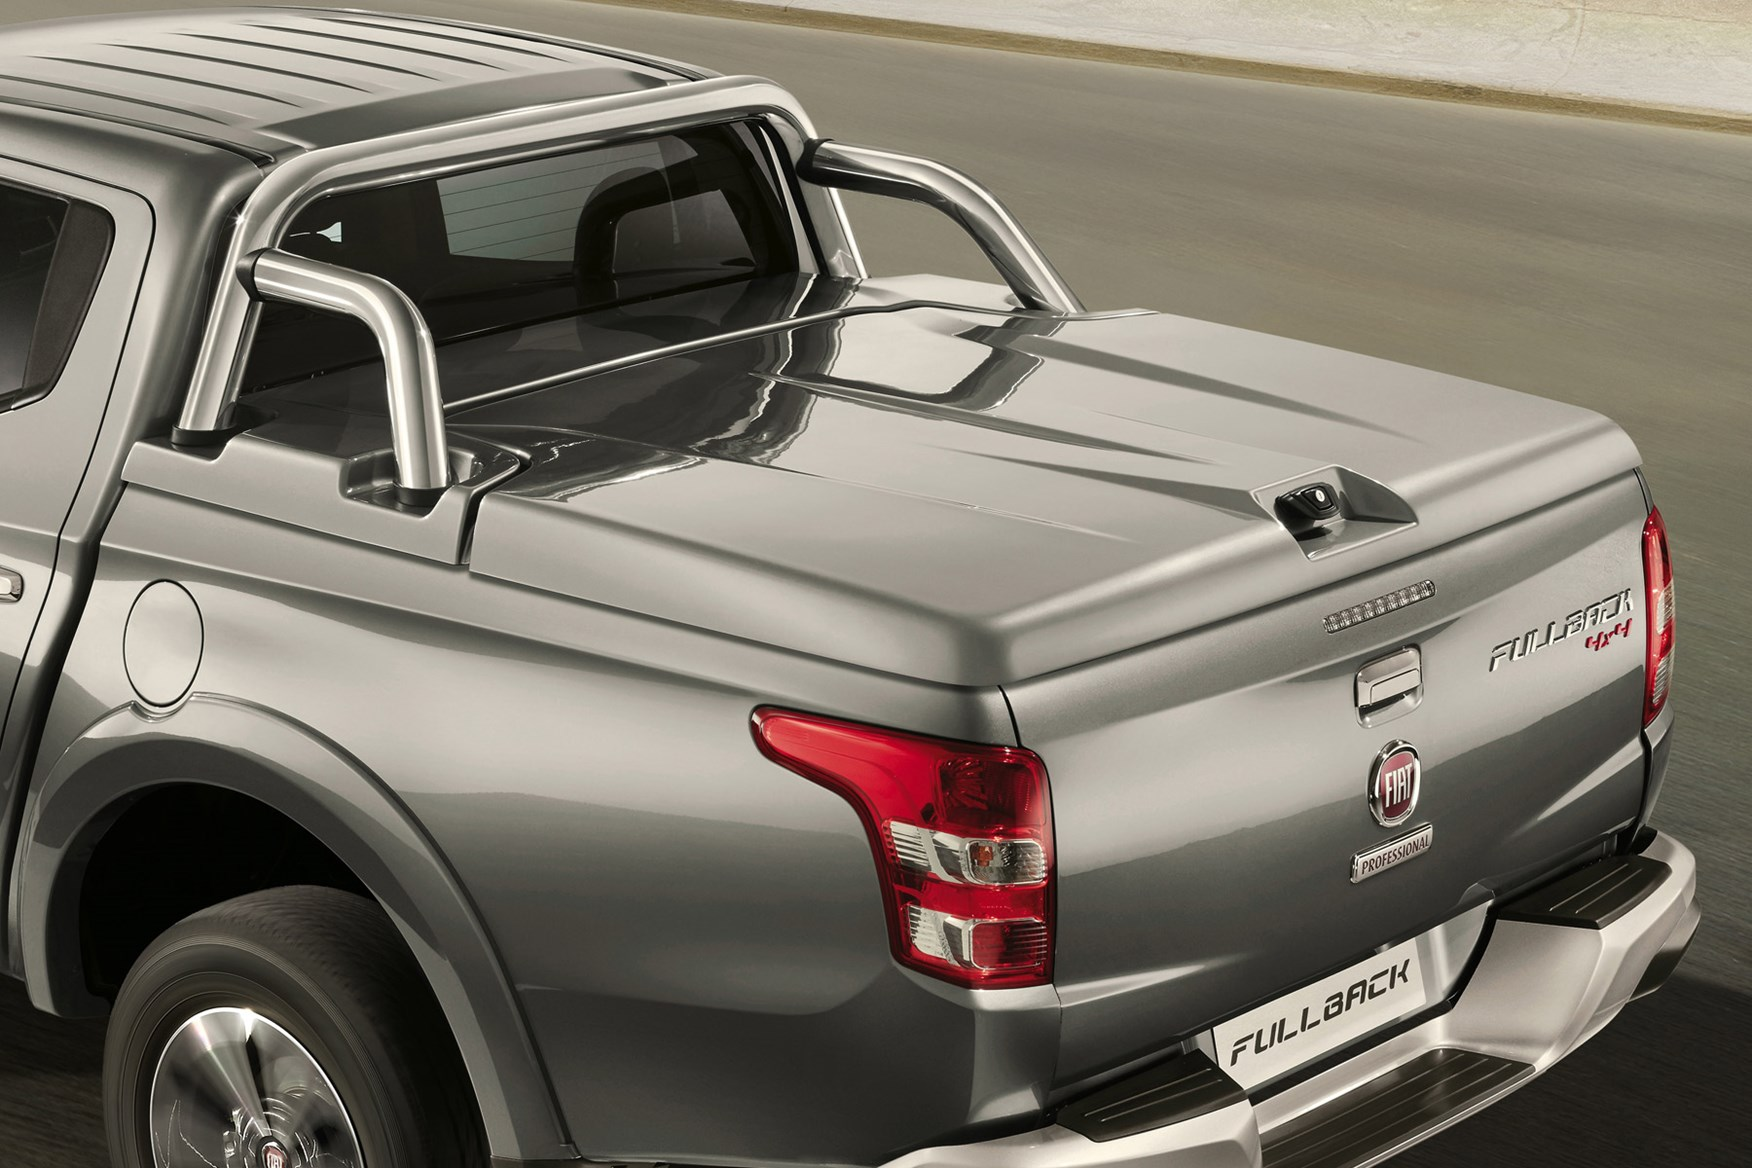 Fiat Fullback full review on Parkers Vans - load area cover